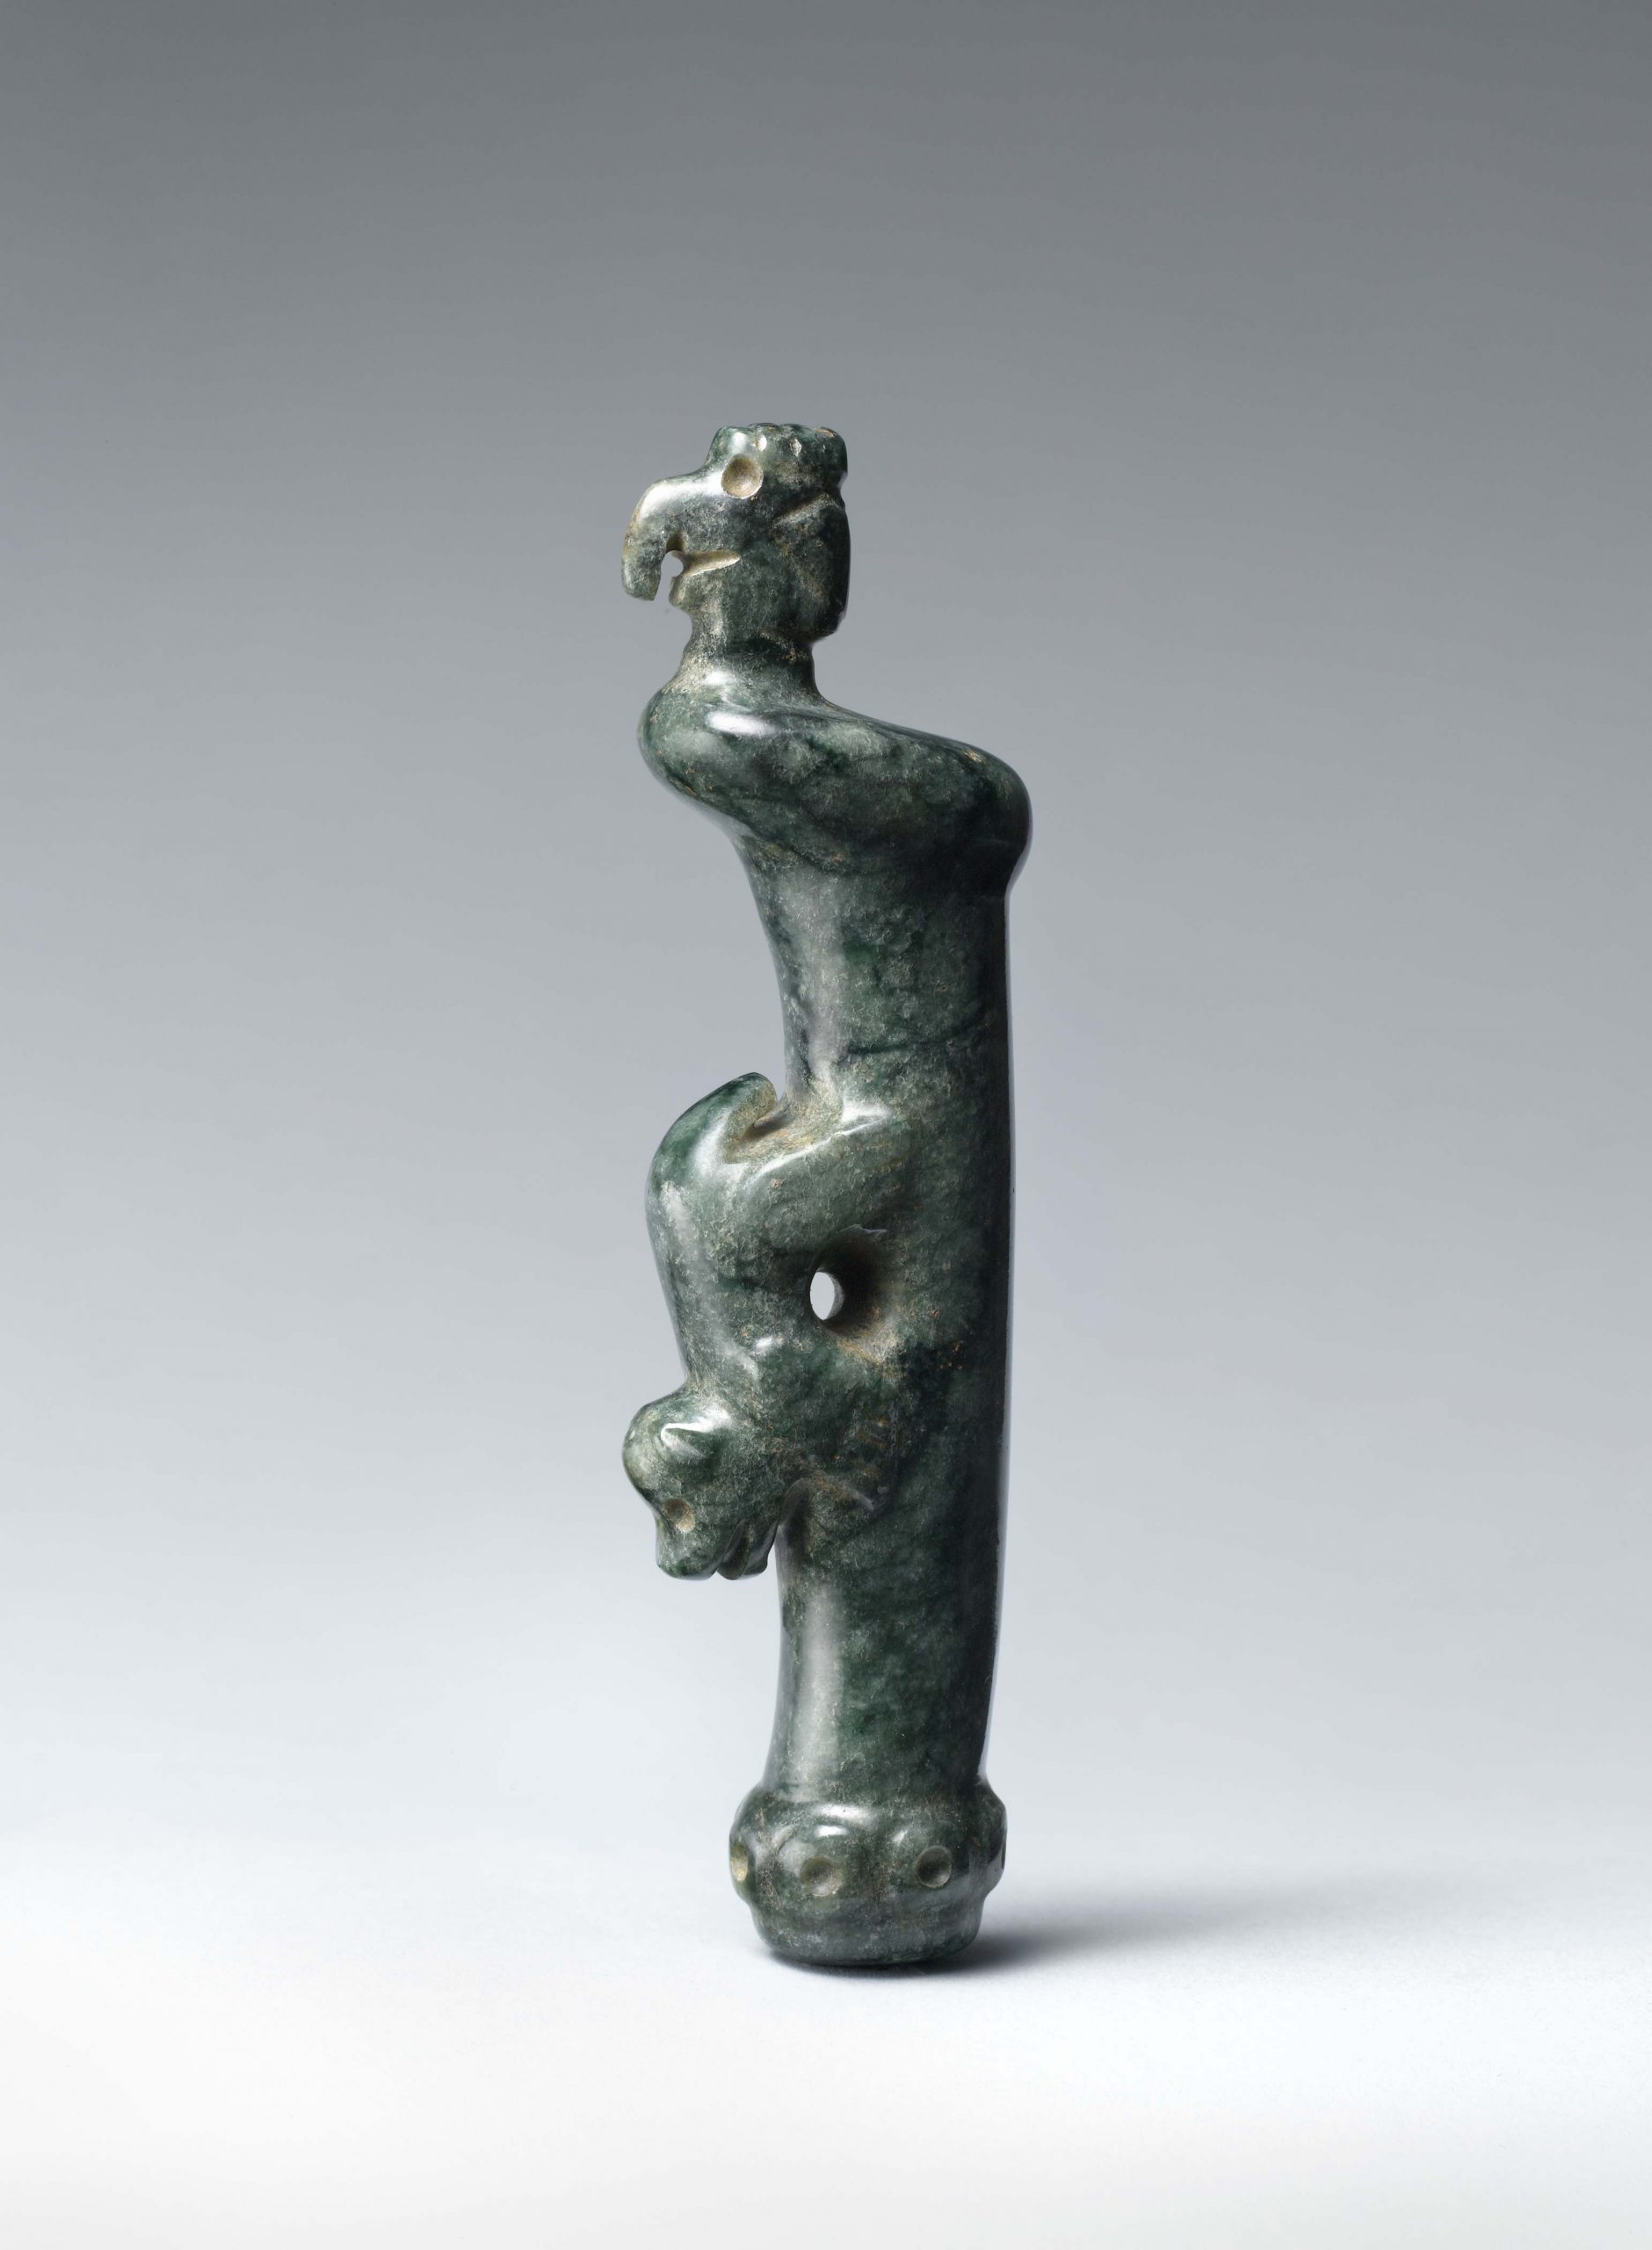 A long vertical pendant with a canine figure at the center of the celt and an avian effigy emerging at the top.